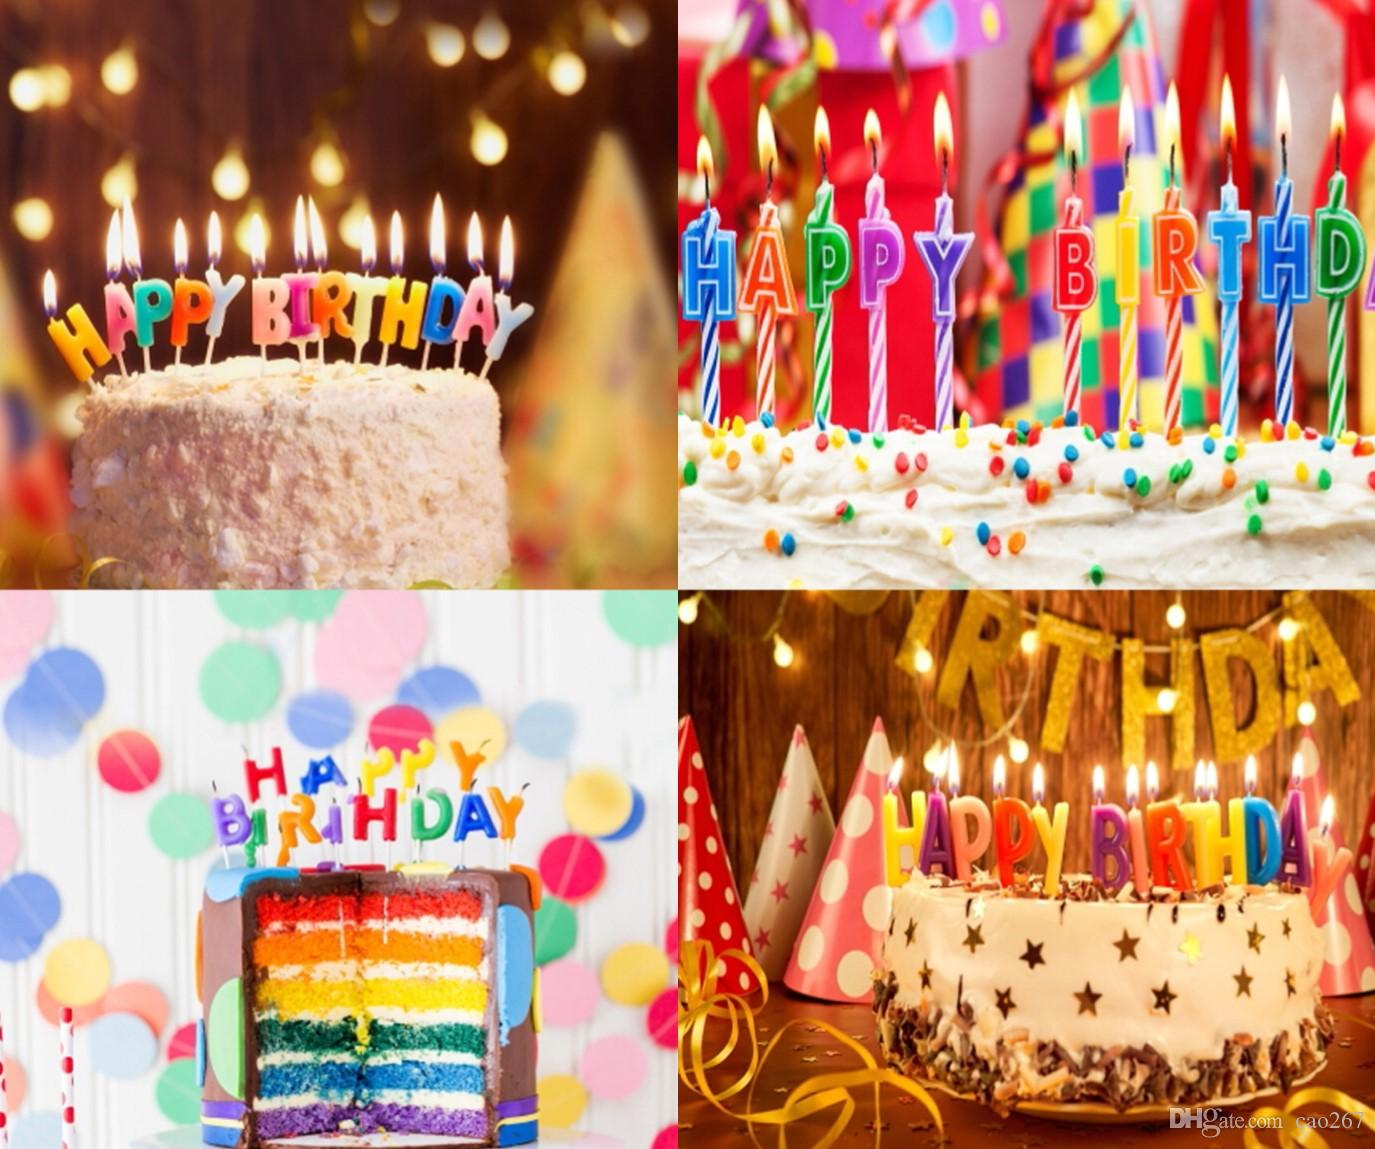 2019 Birthday Style Photography Backdrop For Children Studio New Background With Colorful Cake Candles Gifts From Cao267